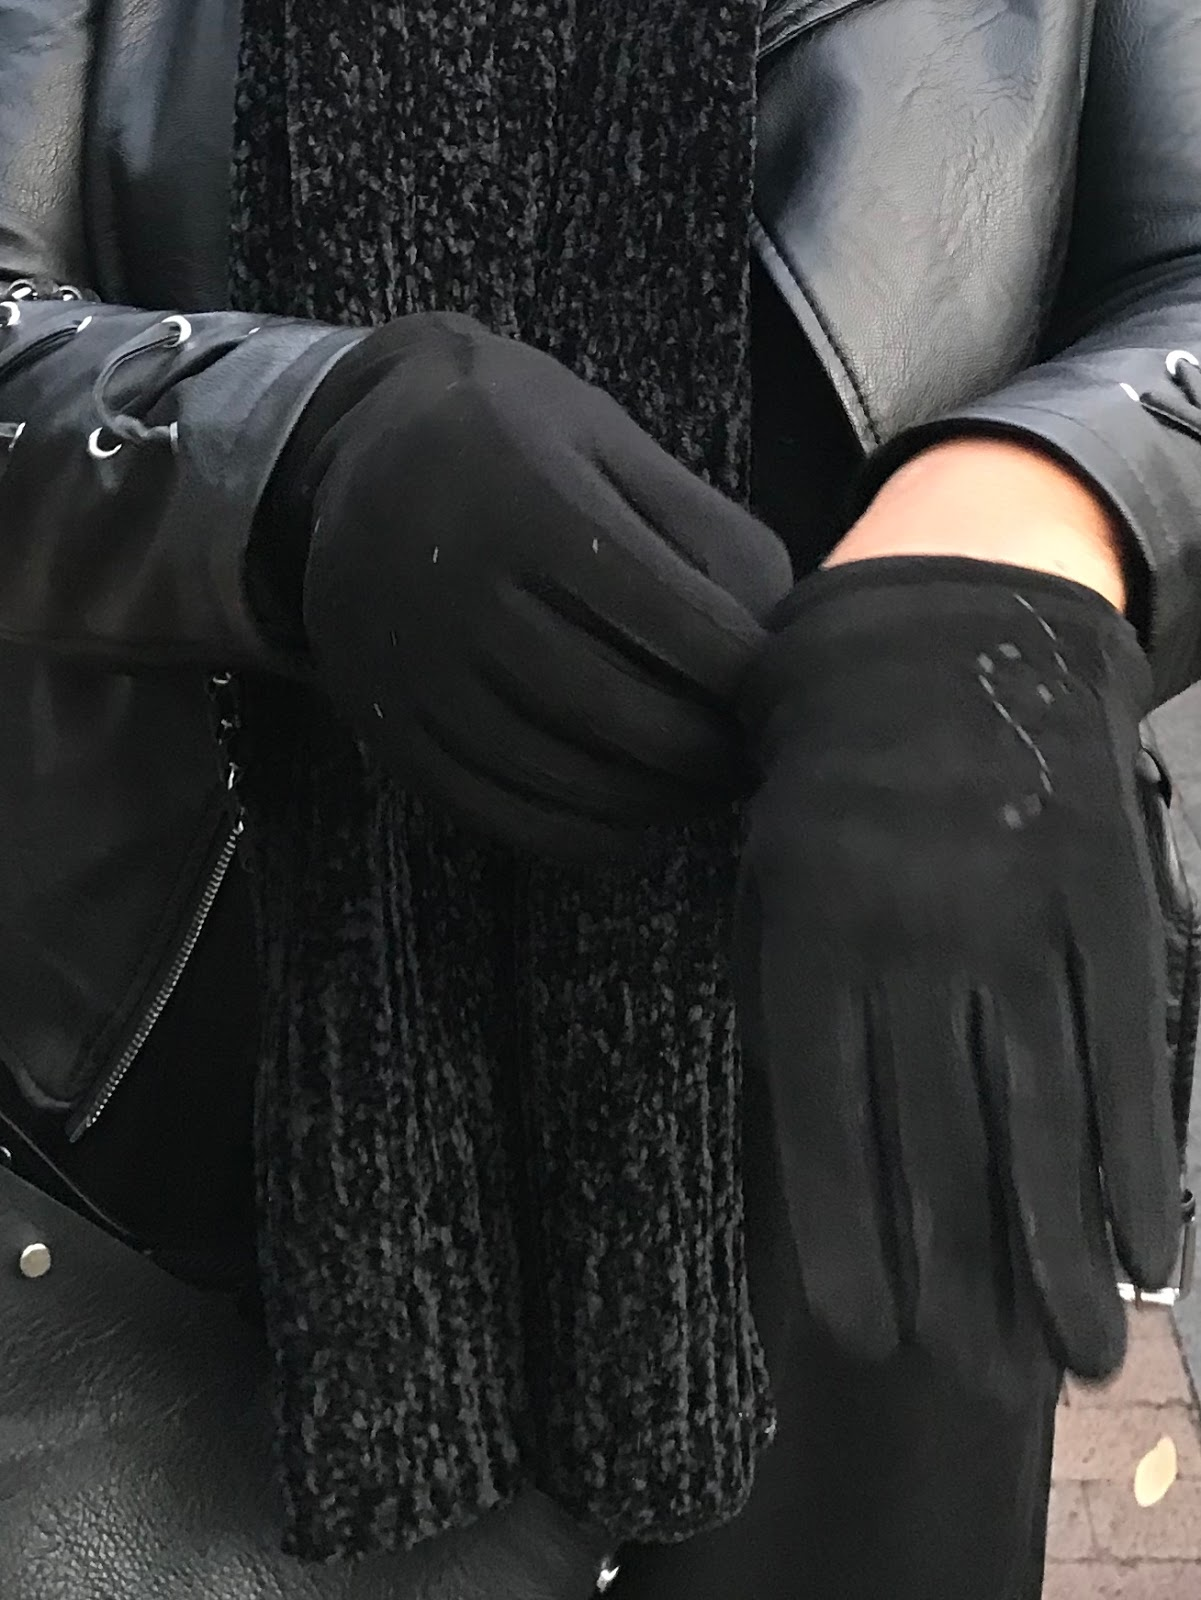 Image: Woman trying on black gloves